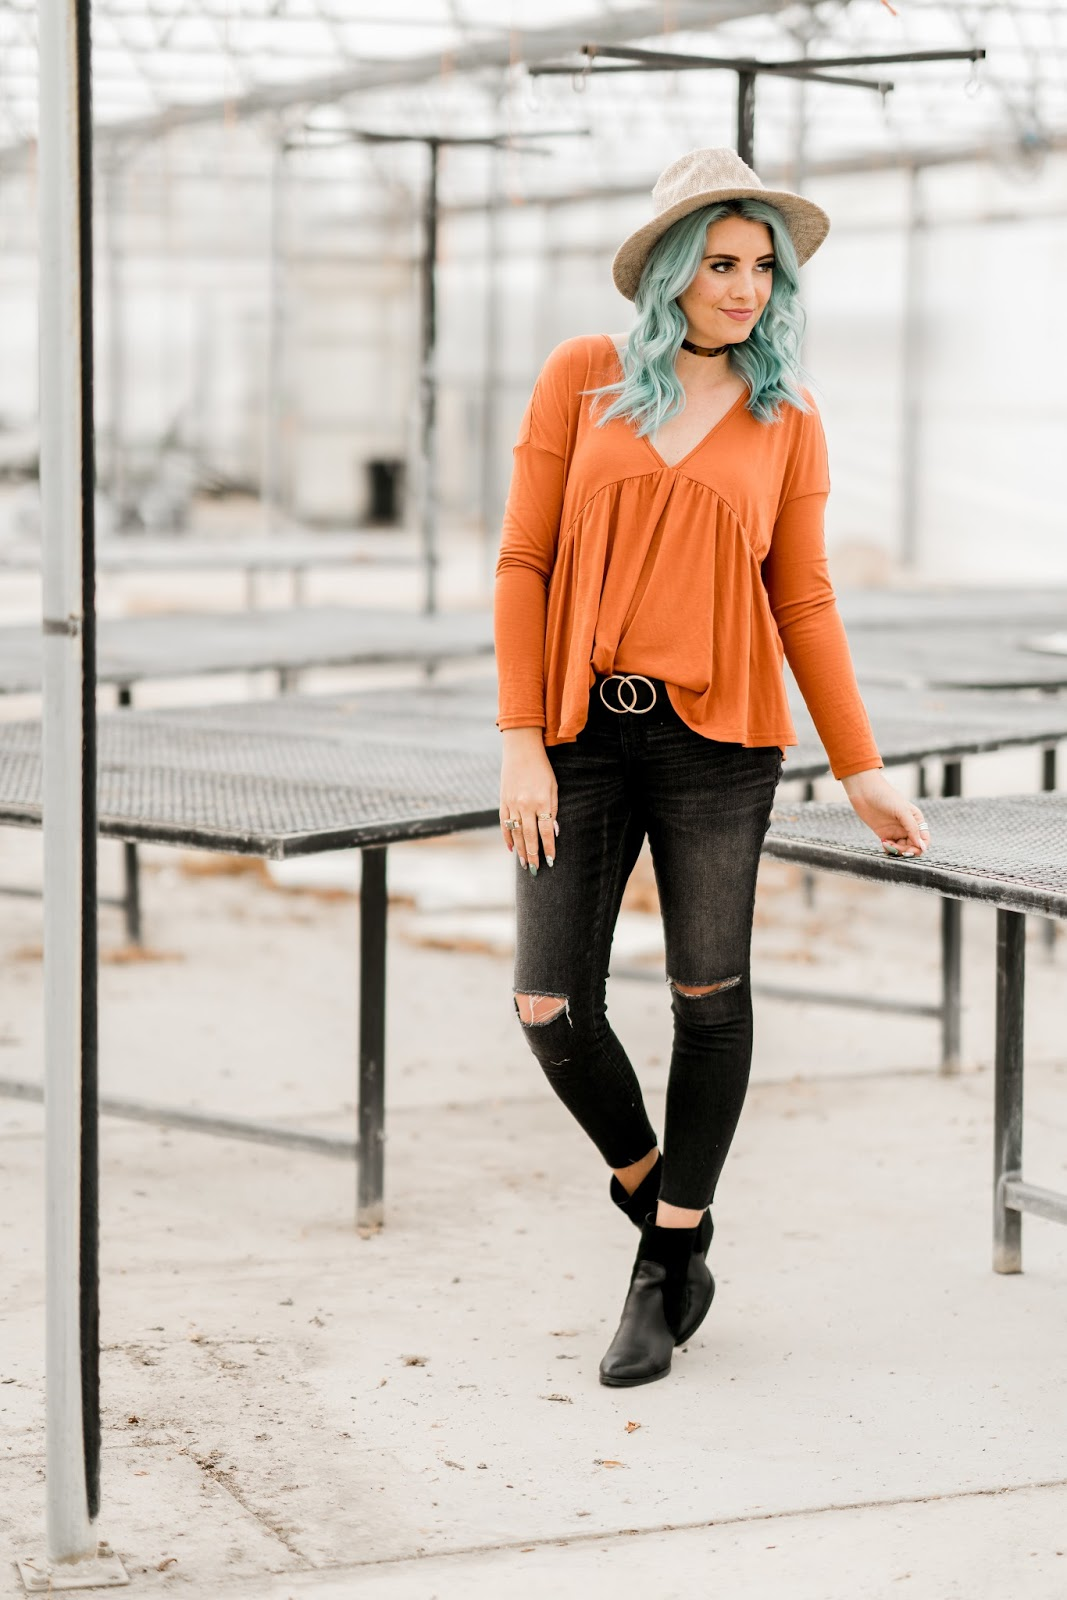 Maternity Jeans, Ripped Knee Jeans, Orange Shirt